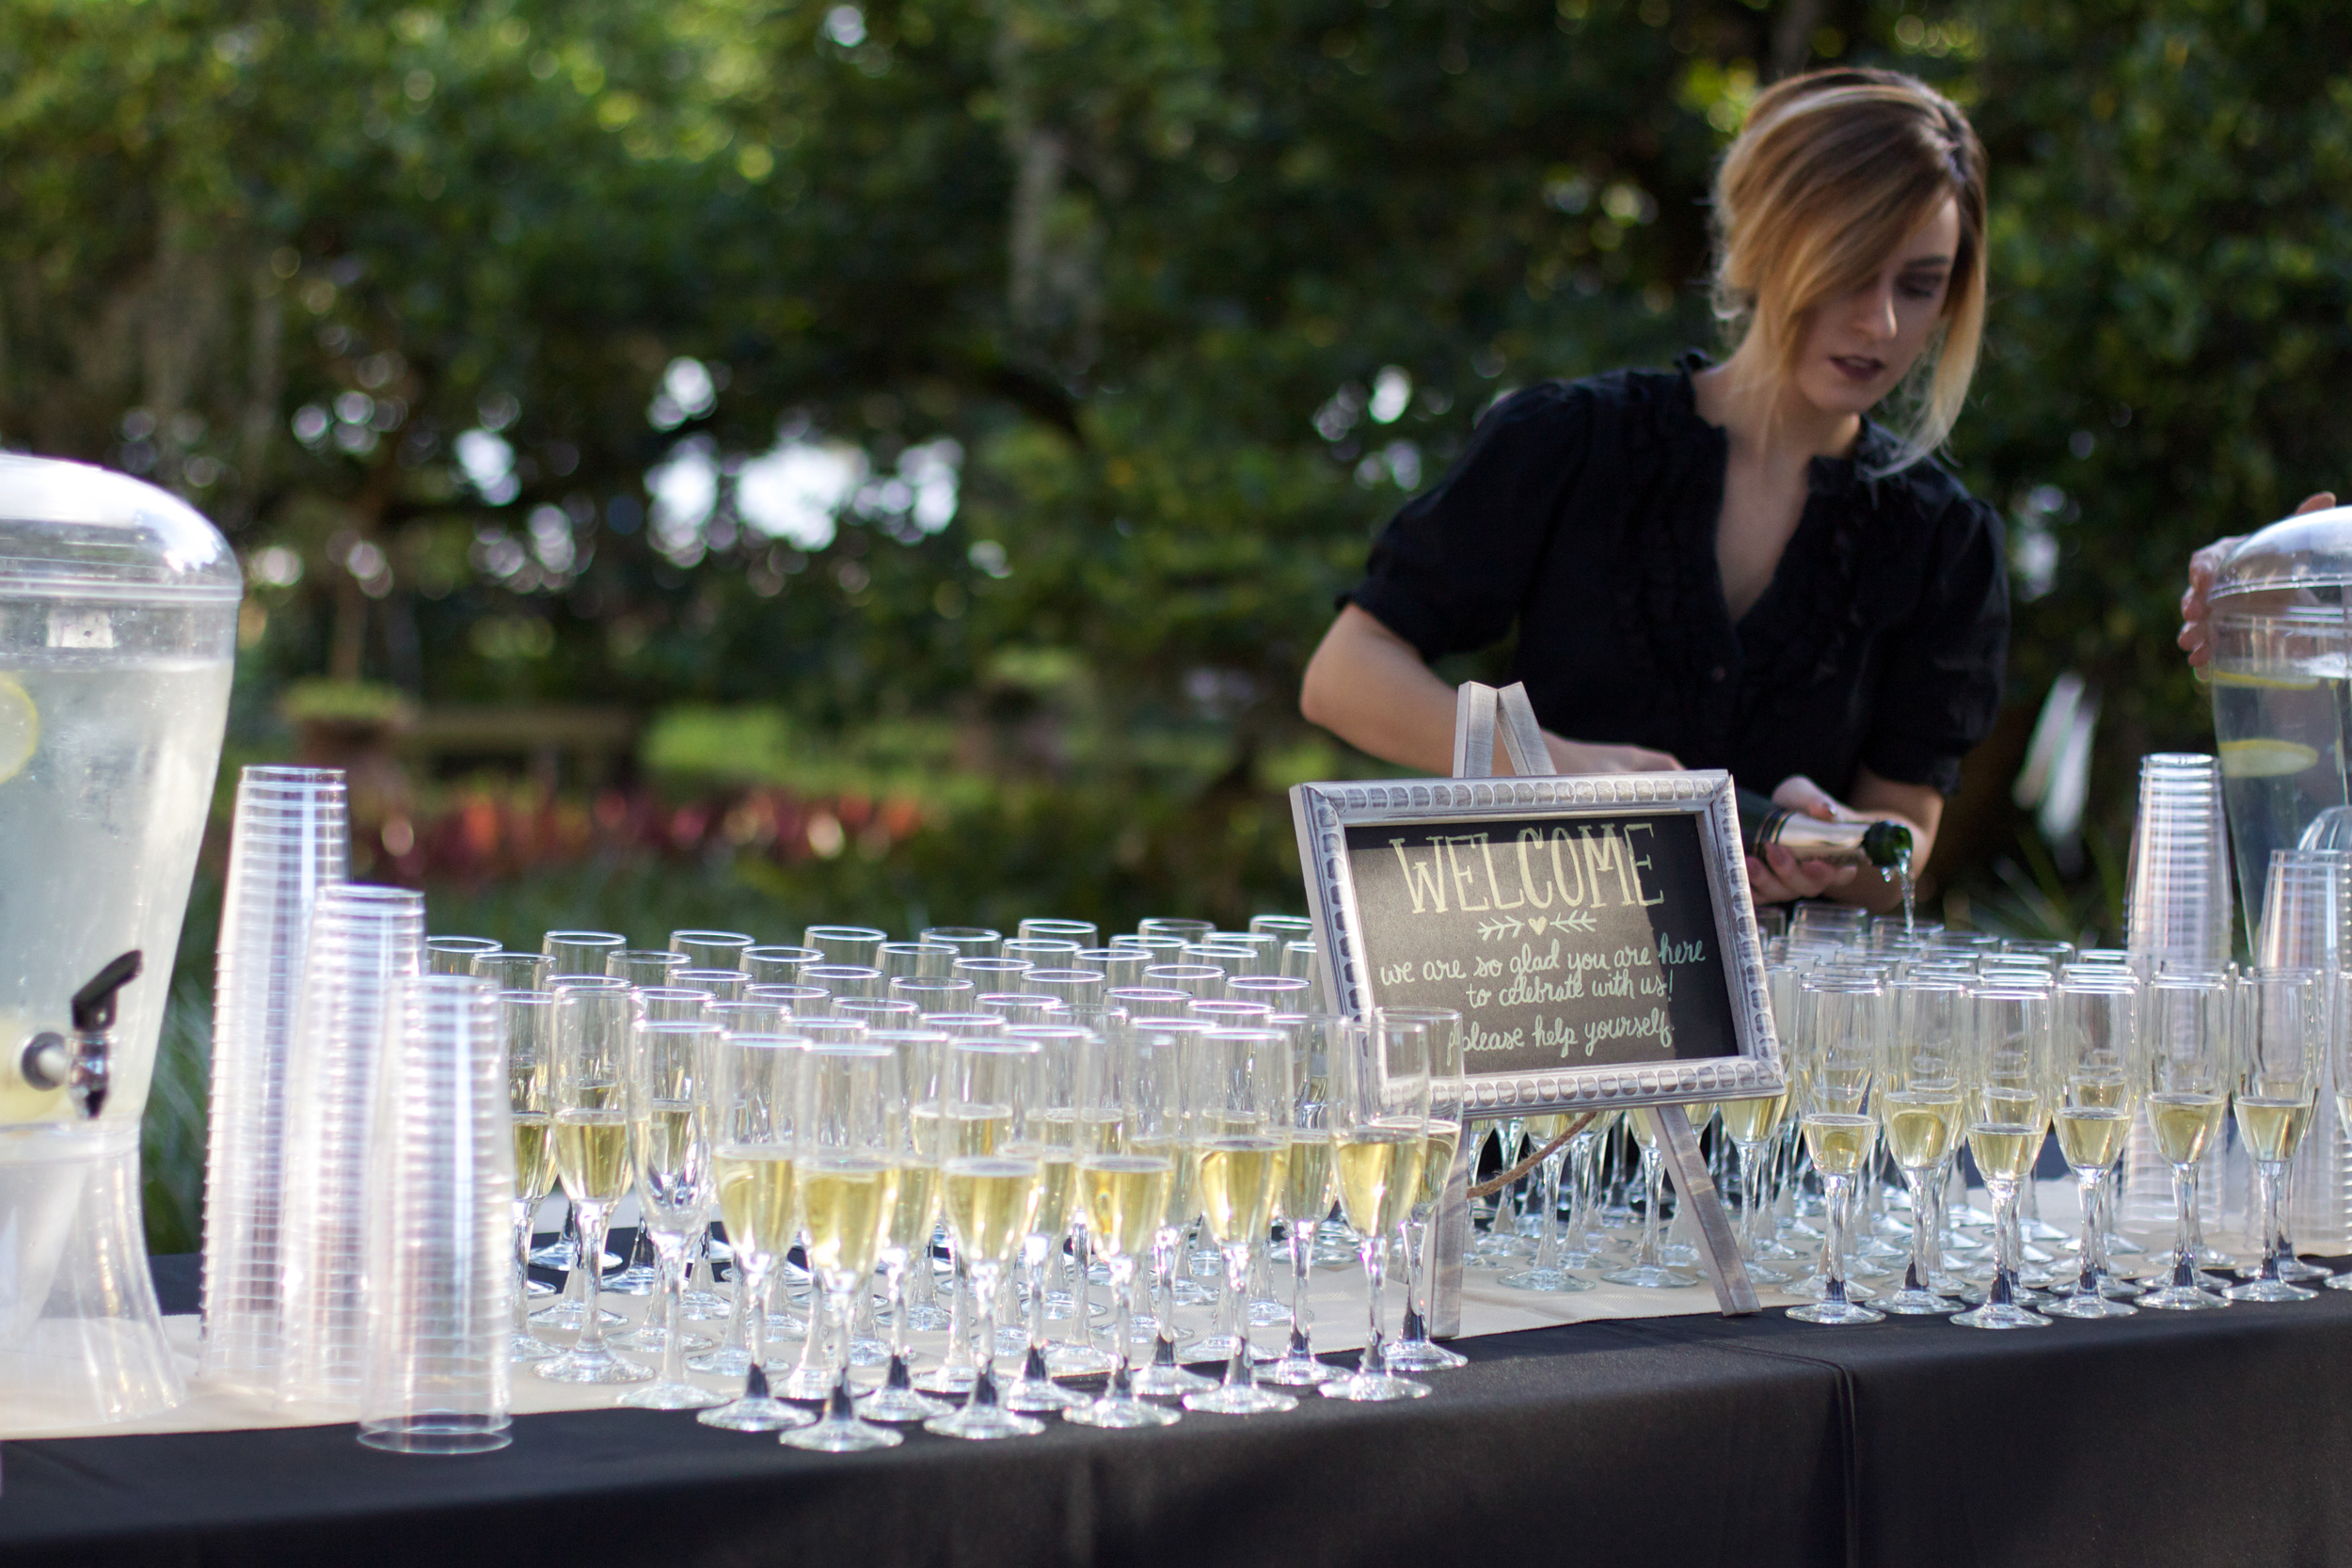 What a pleasant surprise to arrive at an outdoor wedding ceremony and be handed a glass of champagne.